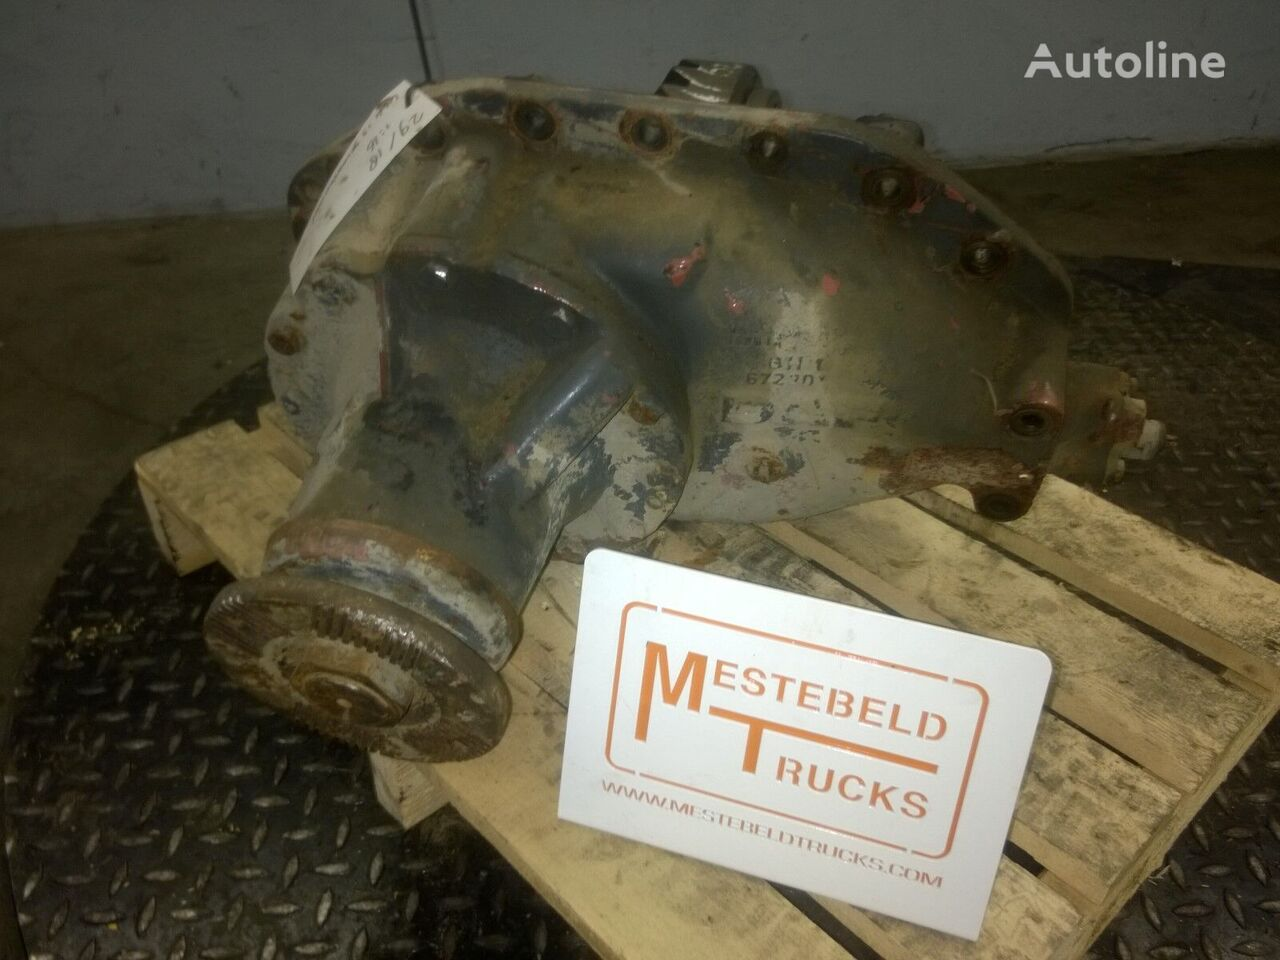 DAF Differentieel 1355 - 5.48 differential for DAF truck